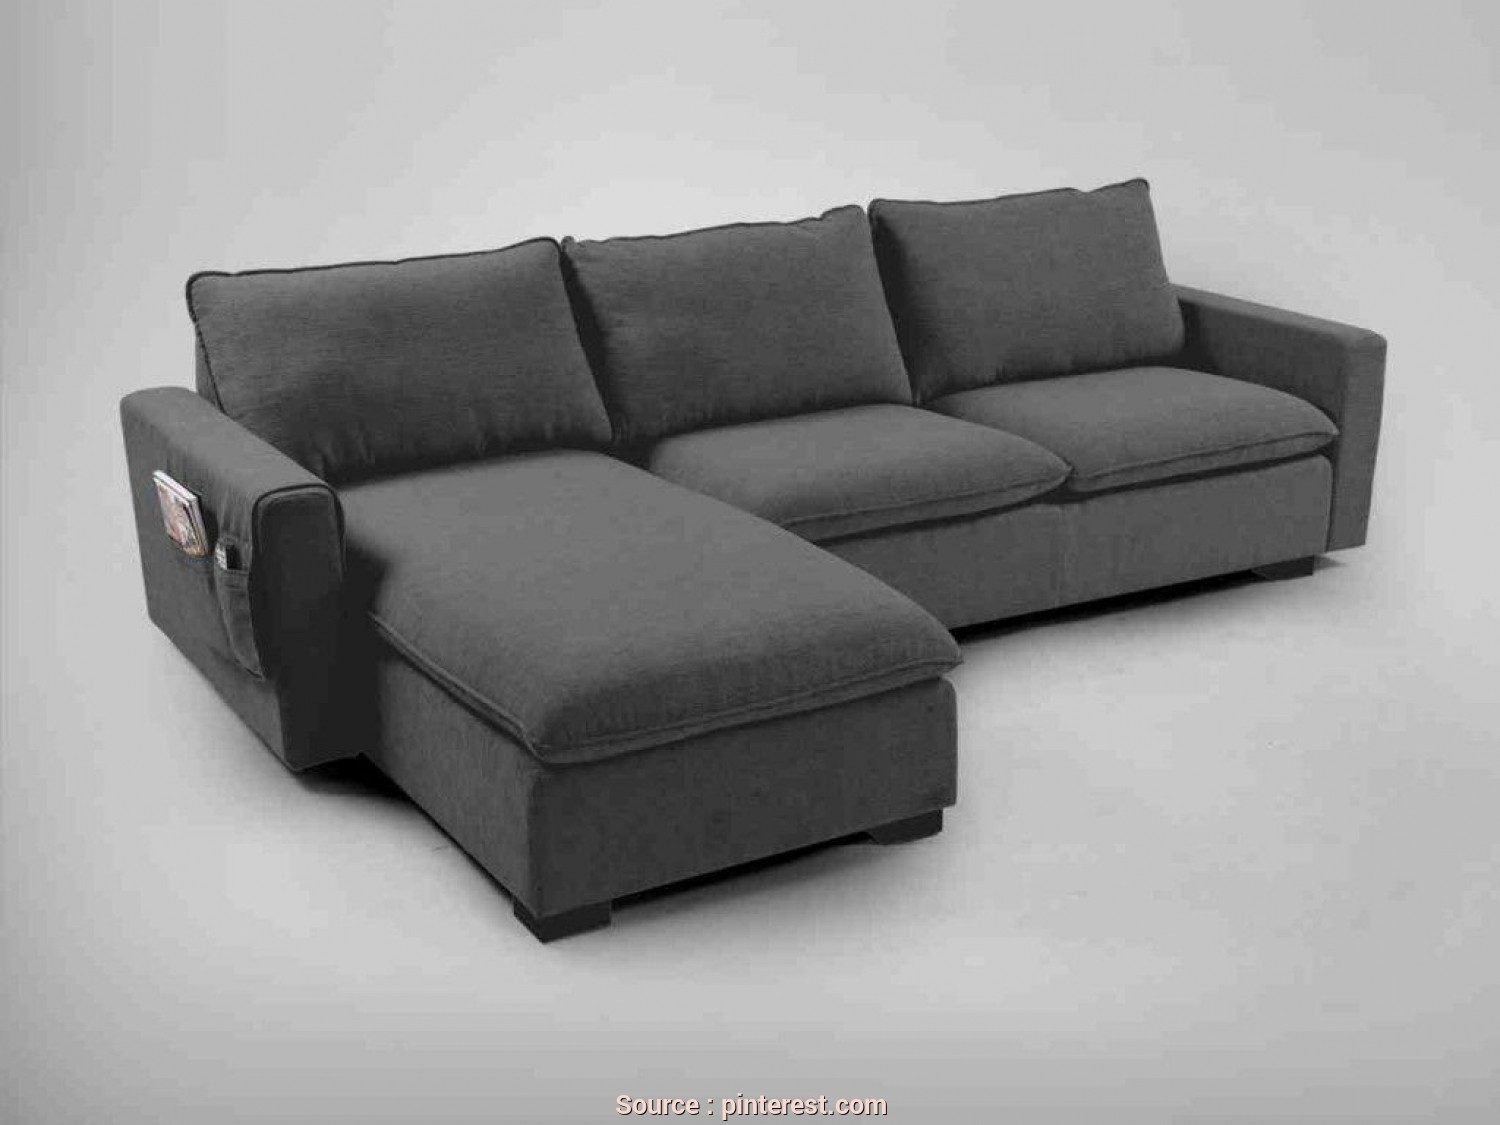 Divano 2 Posti Kijiji, Classy Grey L Shaped Sofa, L Shaped Sofa, L Shaped Sofa, Sofa, Grey L